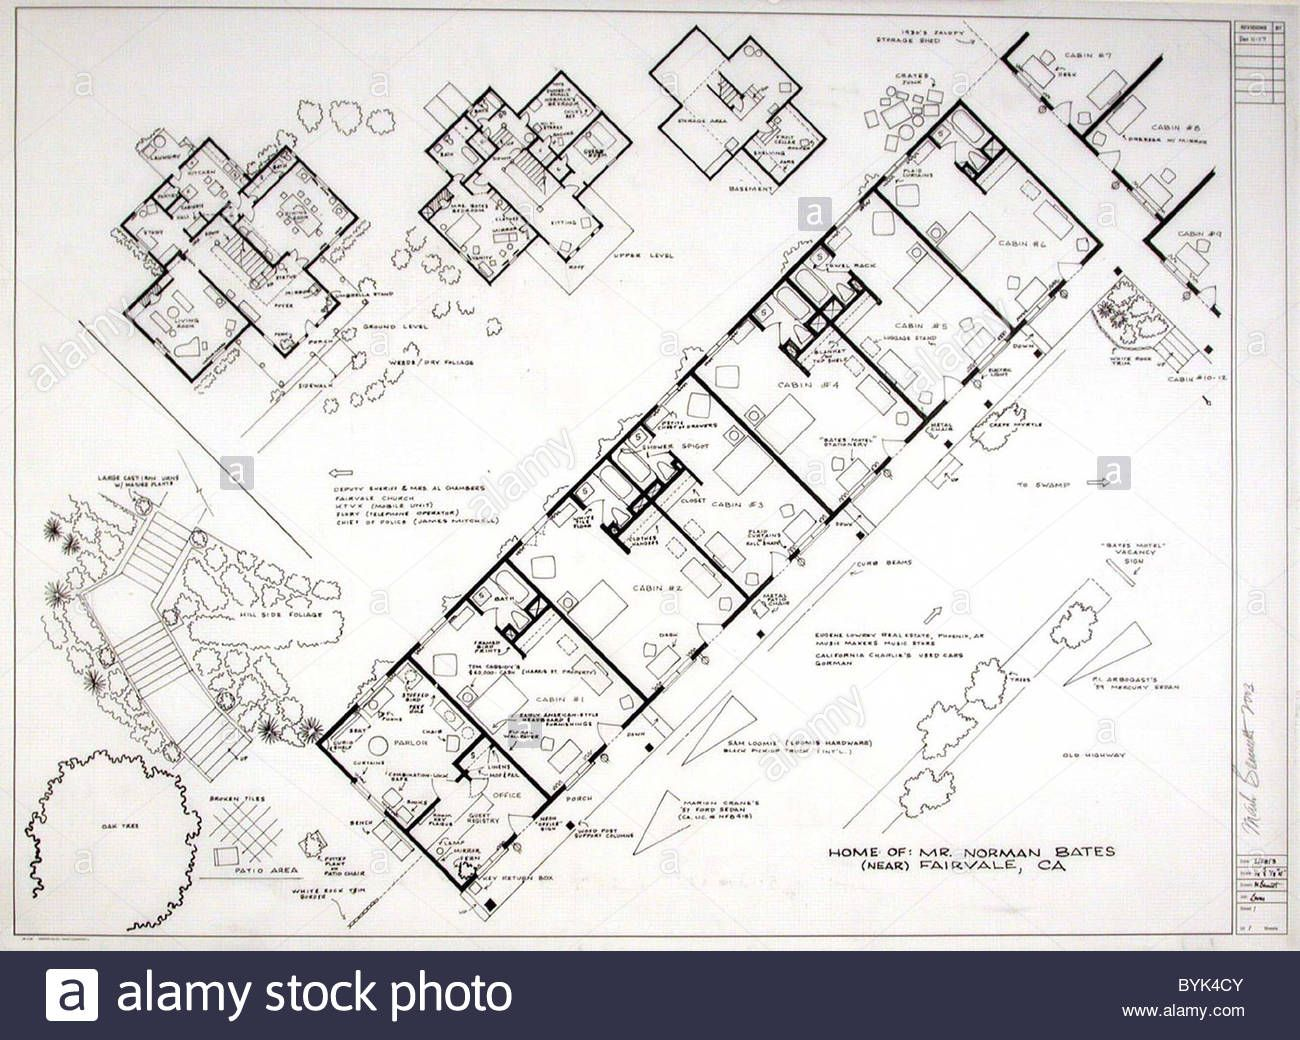 Fantasy Floor plans - Psycho - Bates Motel Ever wanted to build a ...